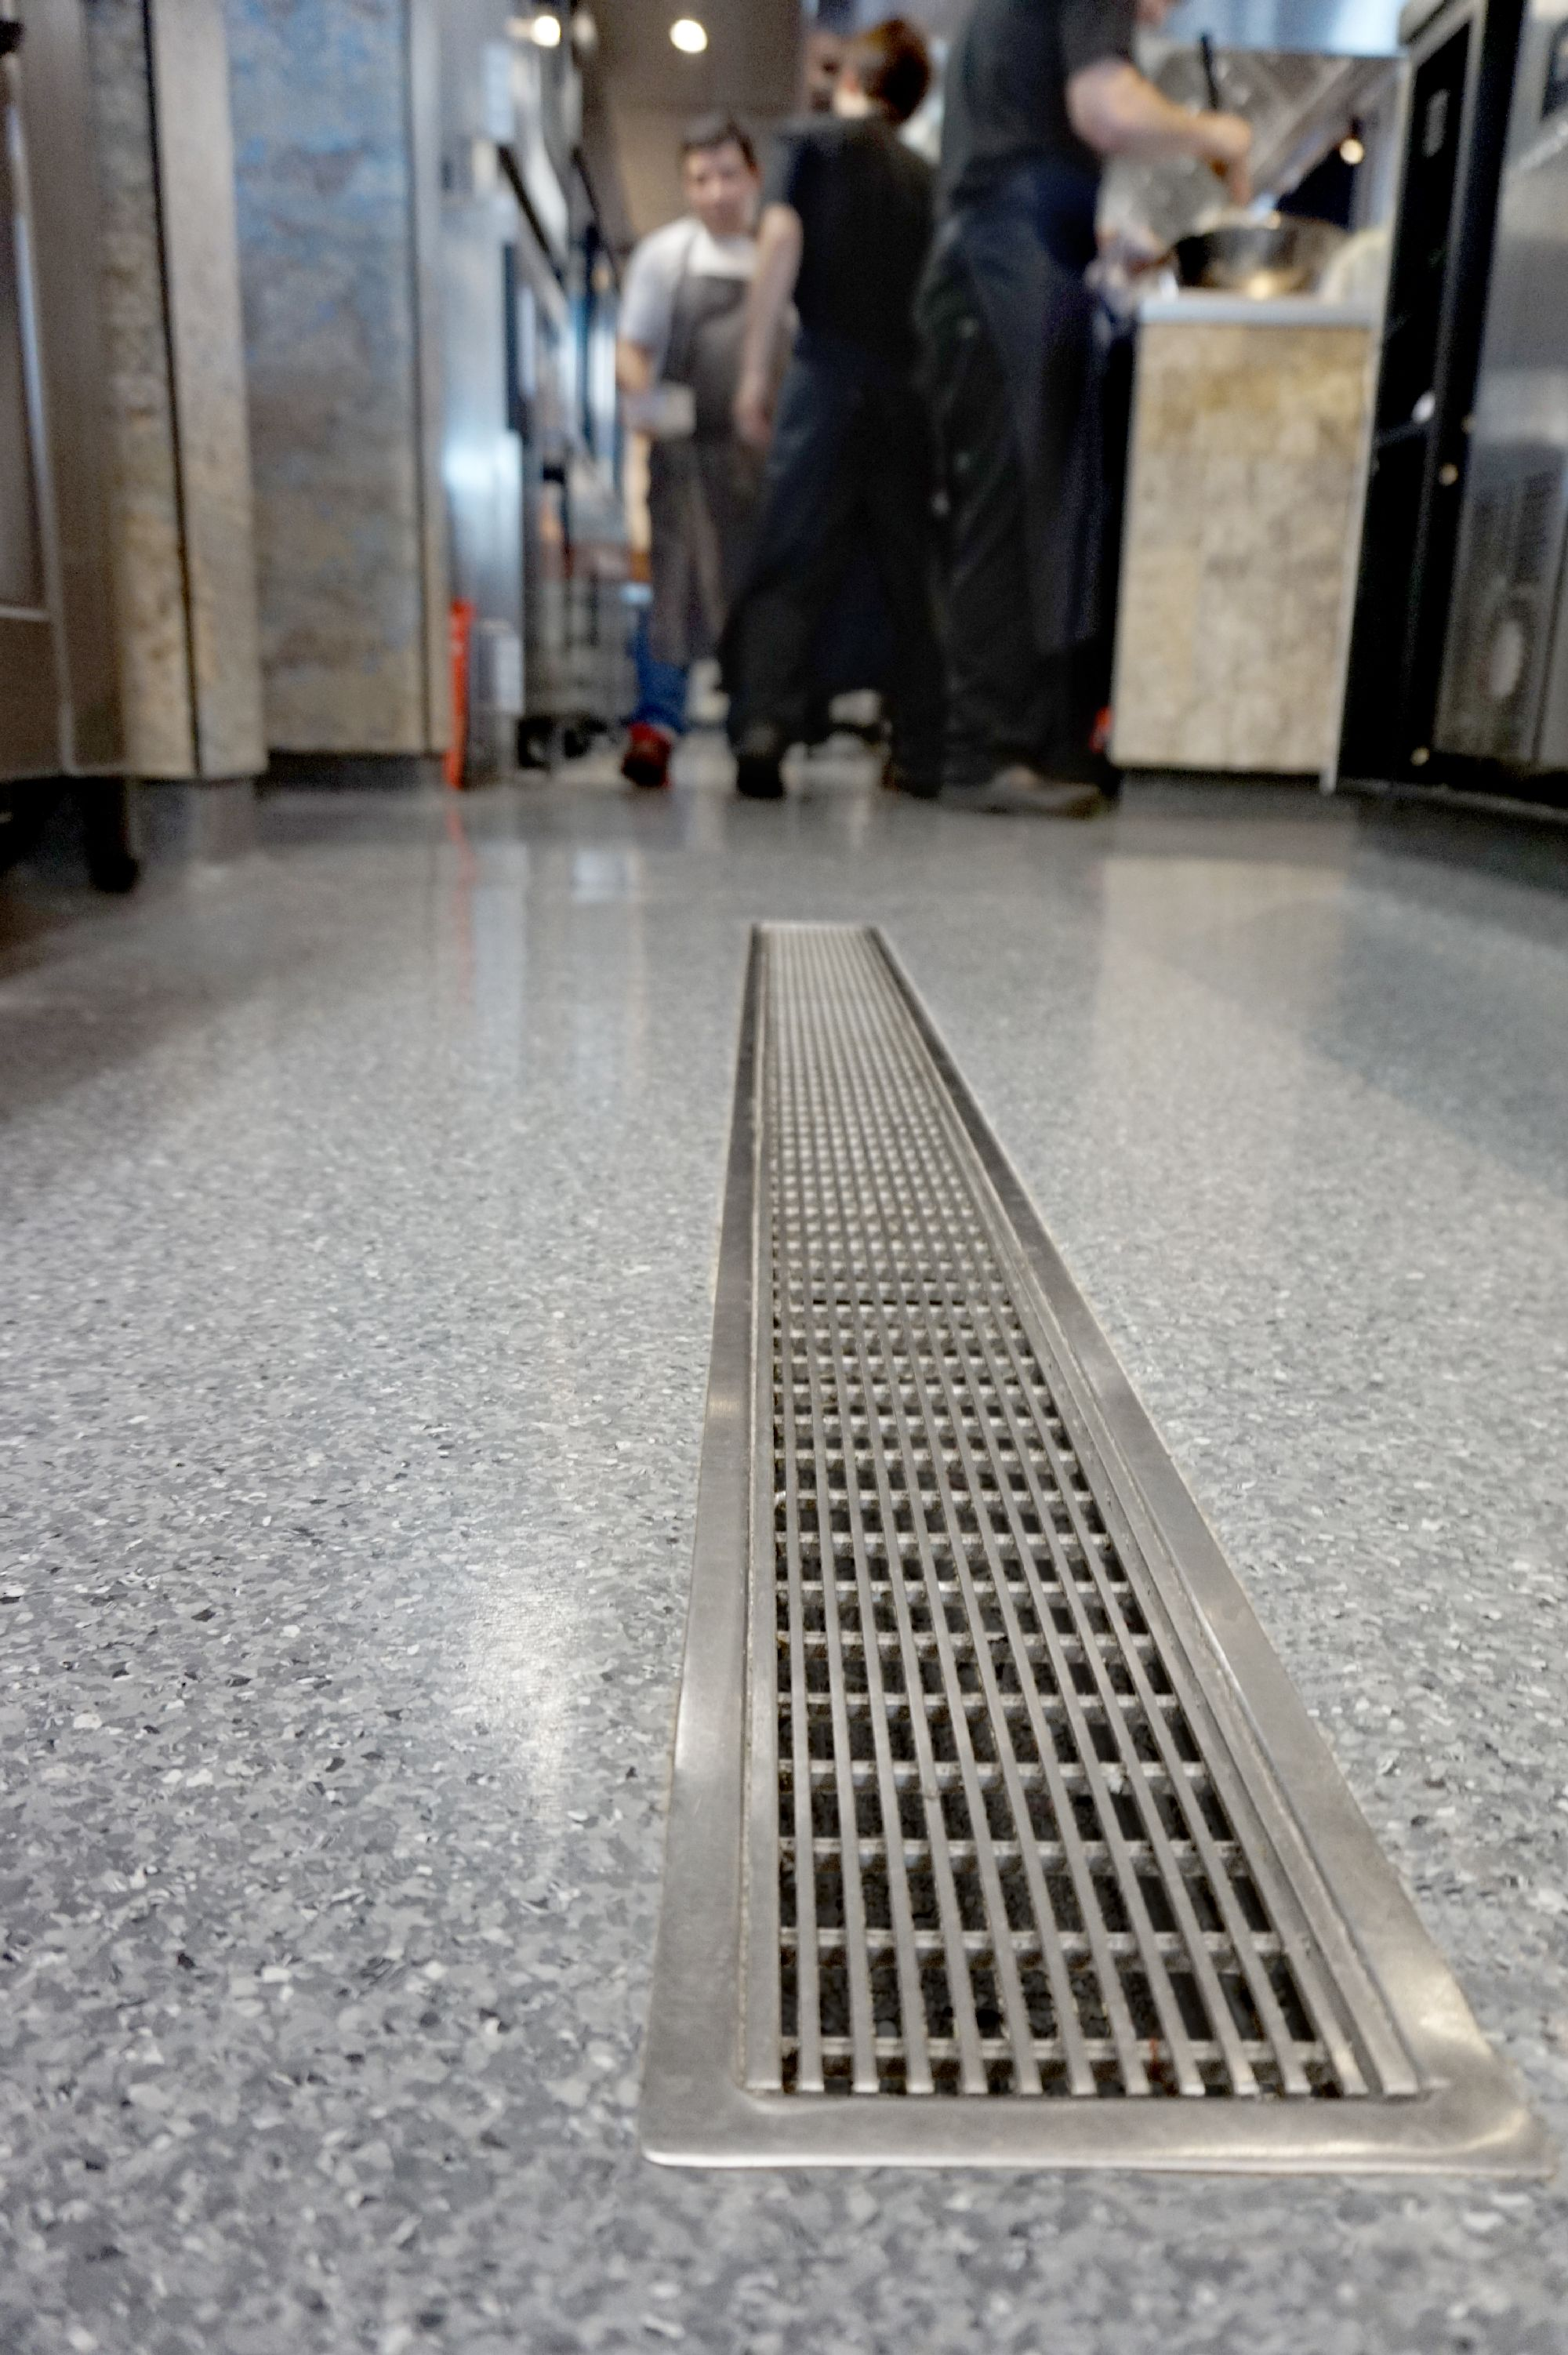 Allproof VCC channel for commercial kitchen drainage